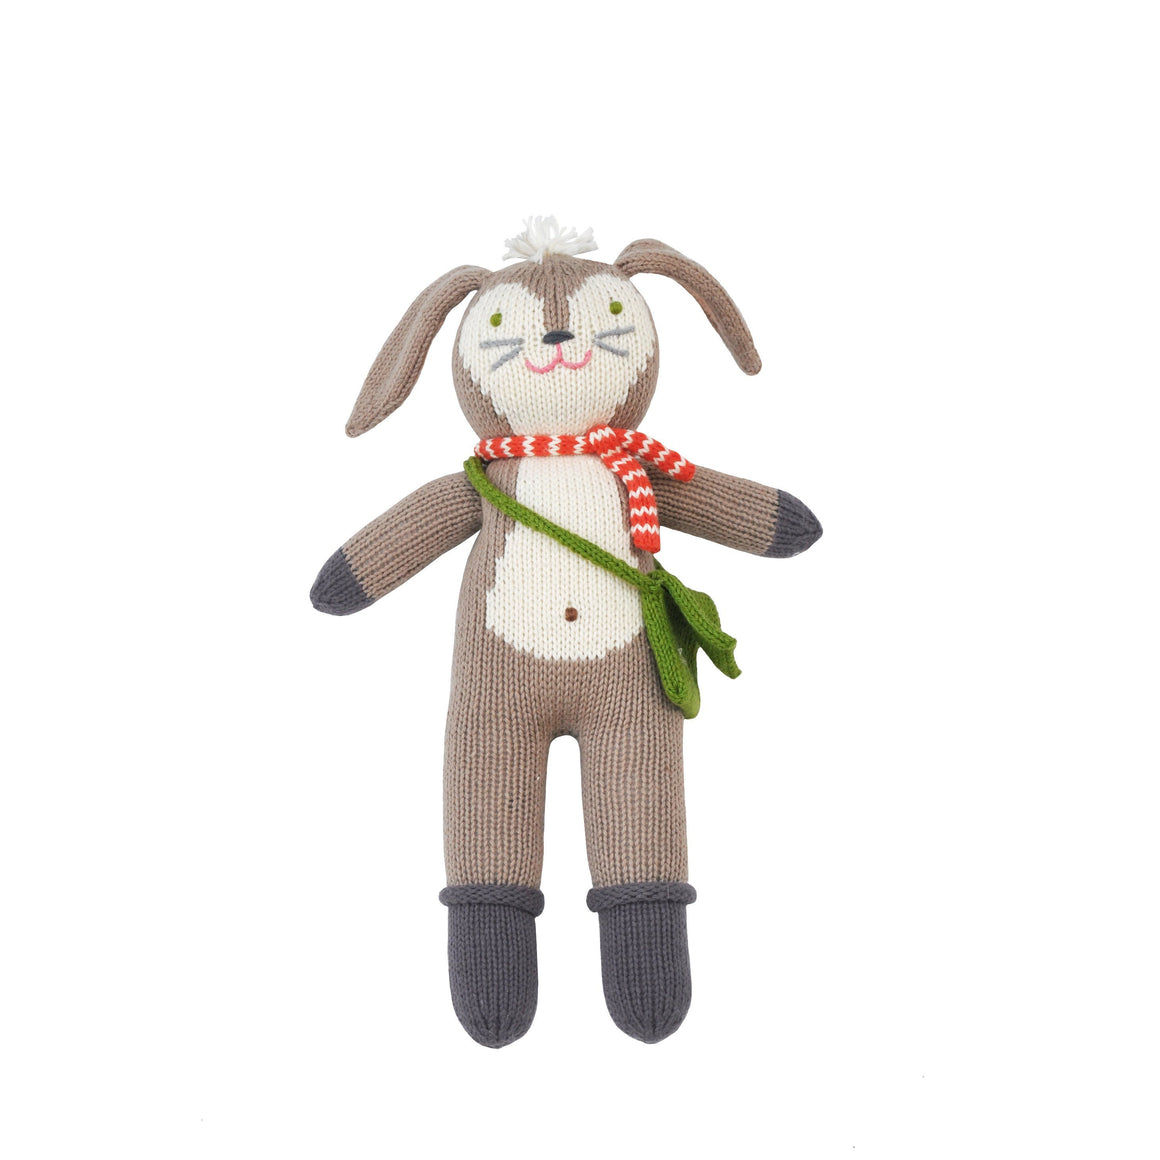 Bla Bla: Mini Pierre the Bunny Knit Doll